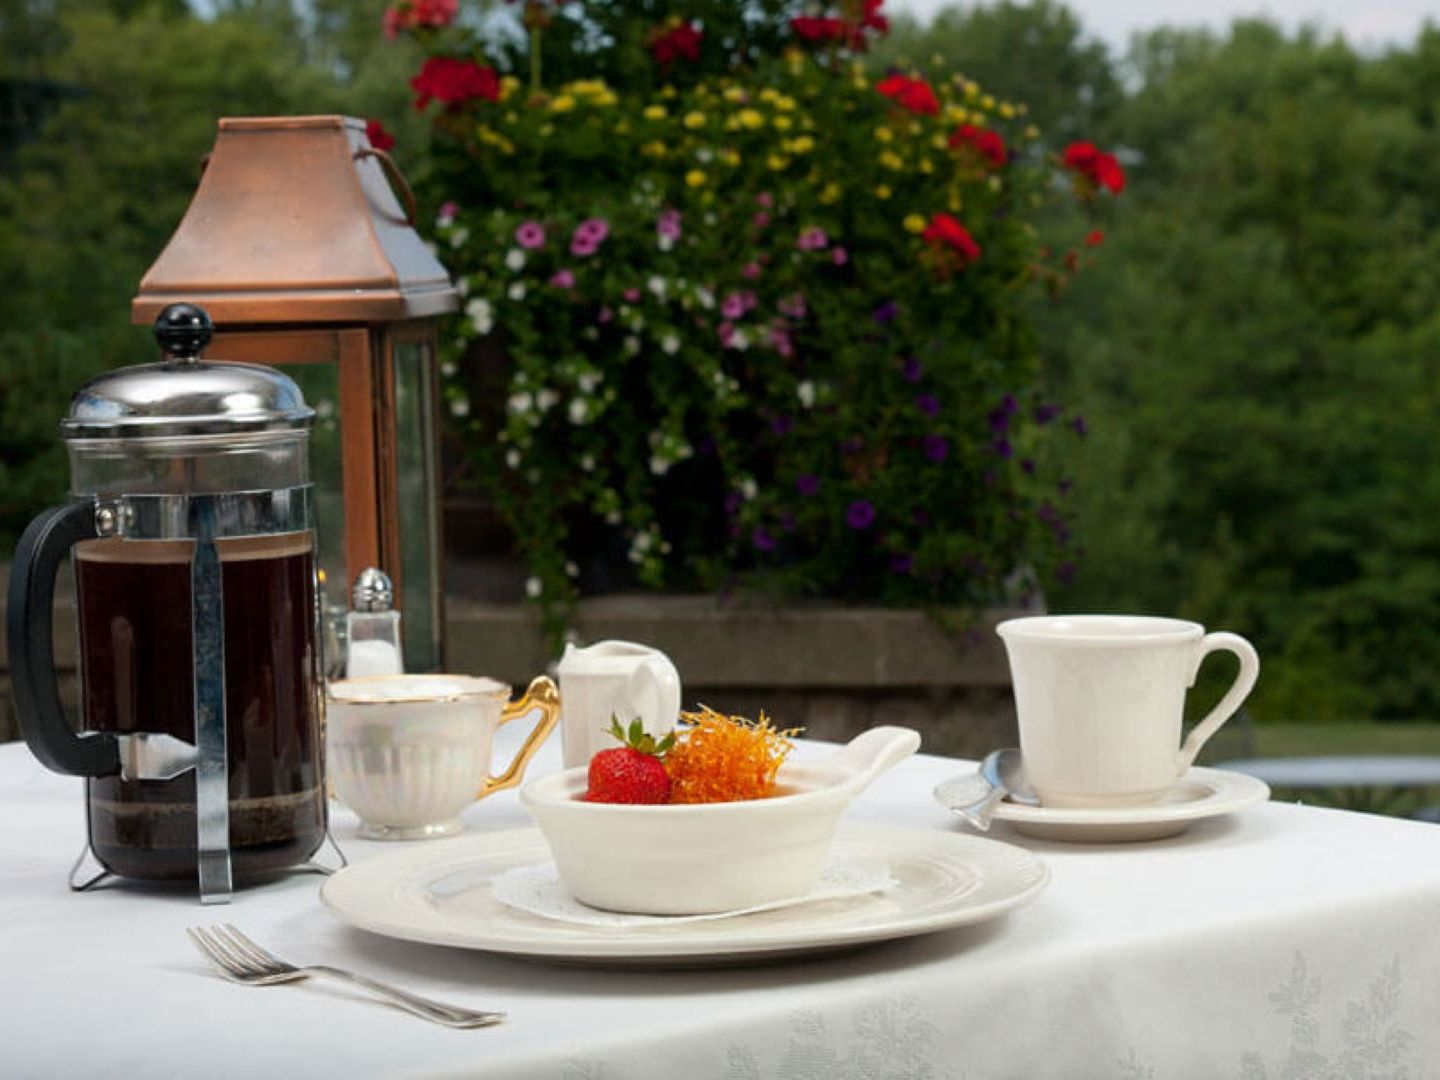 Newfoundland Bed and Breakfast